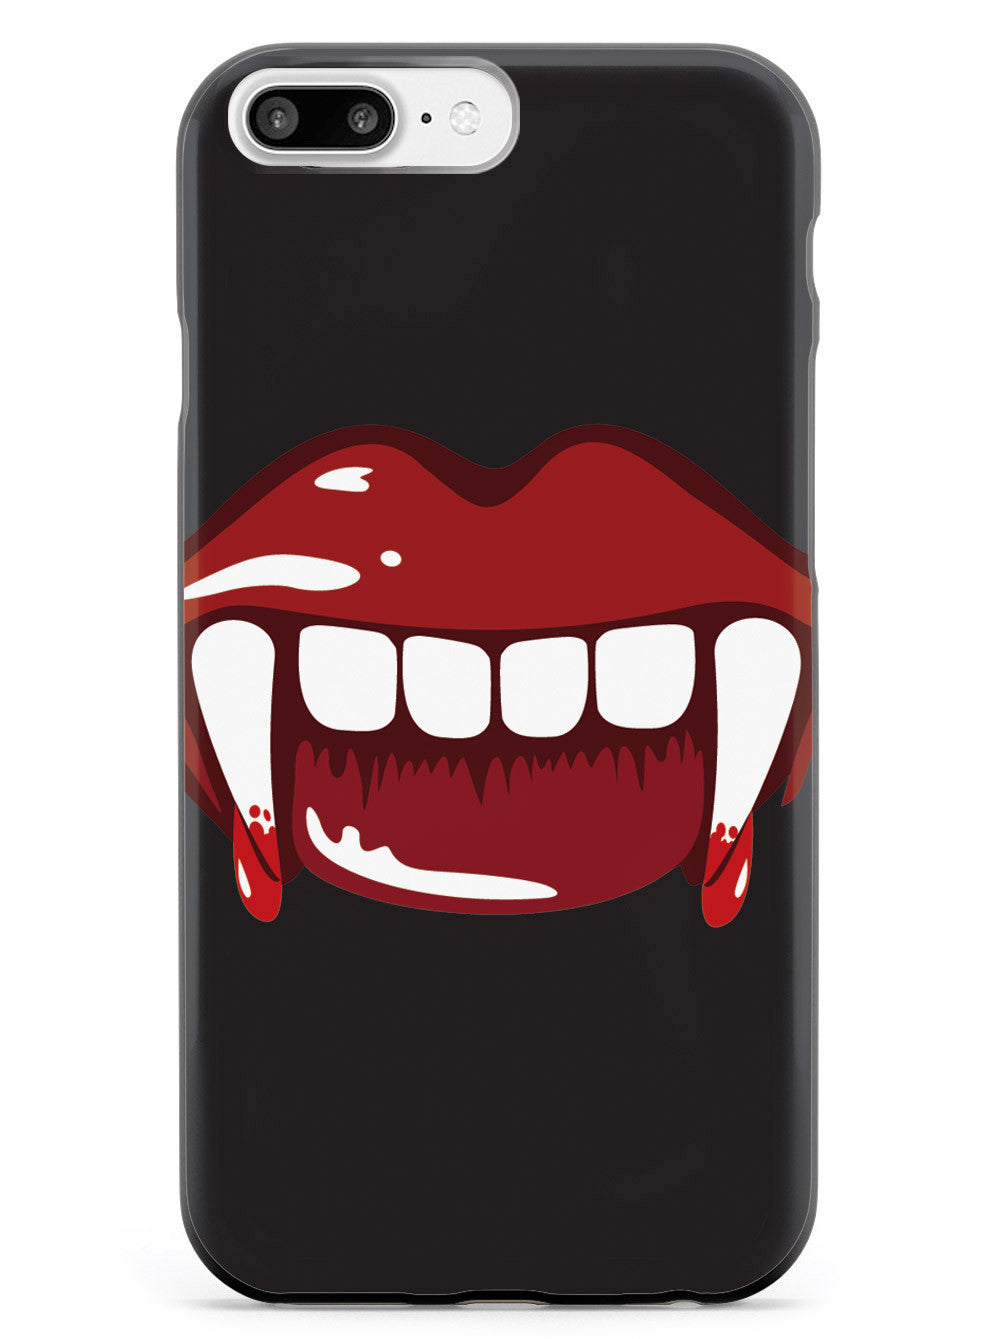 Fang Lips Case